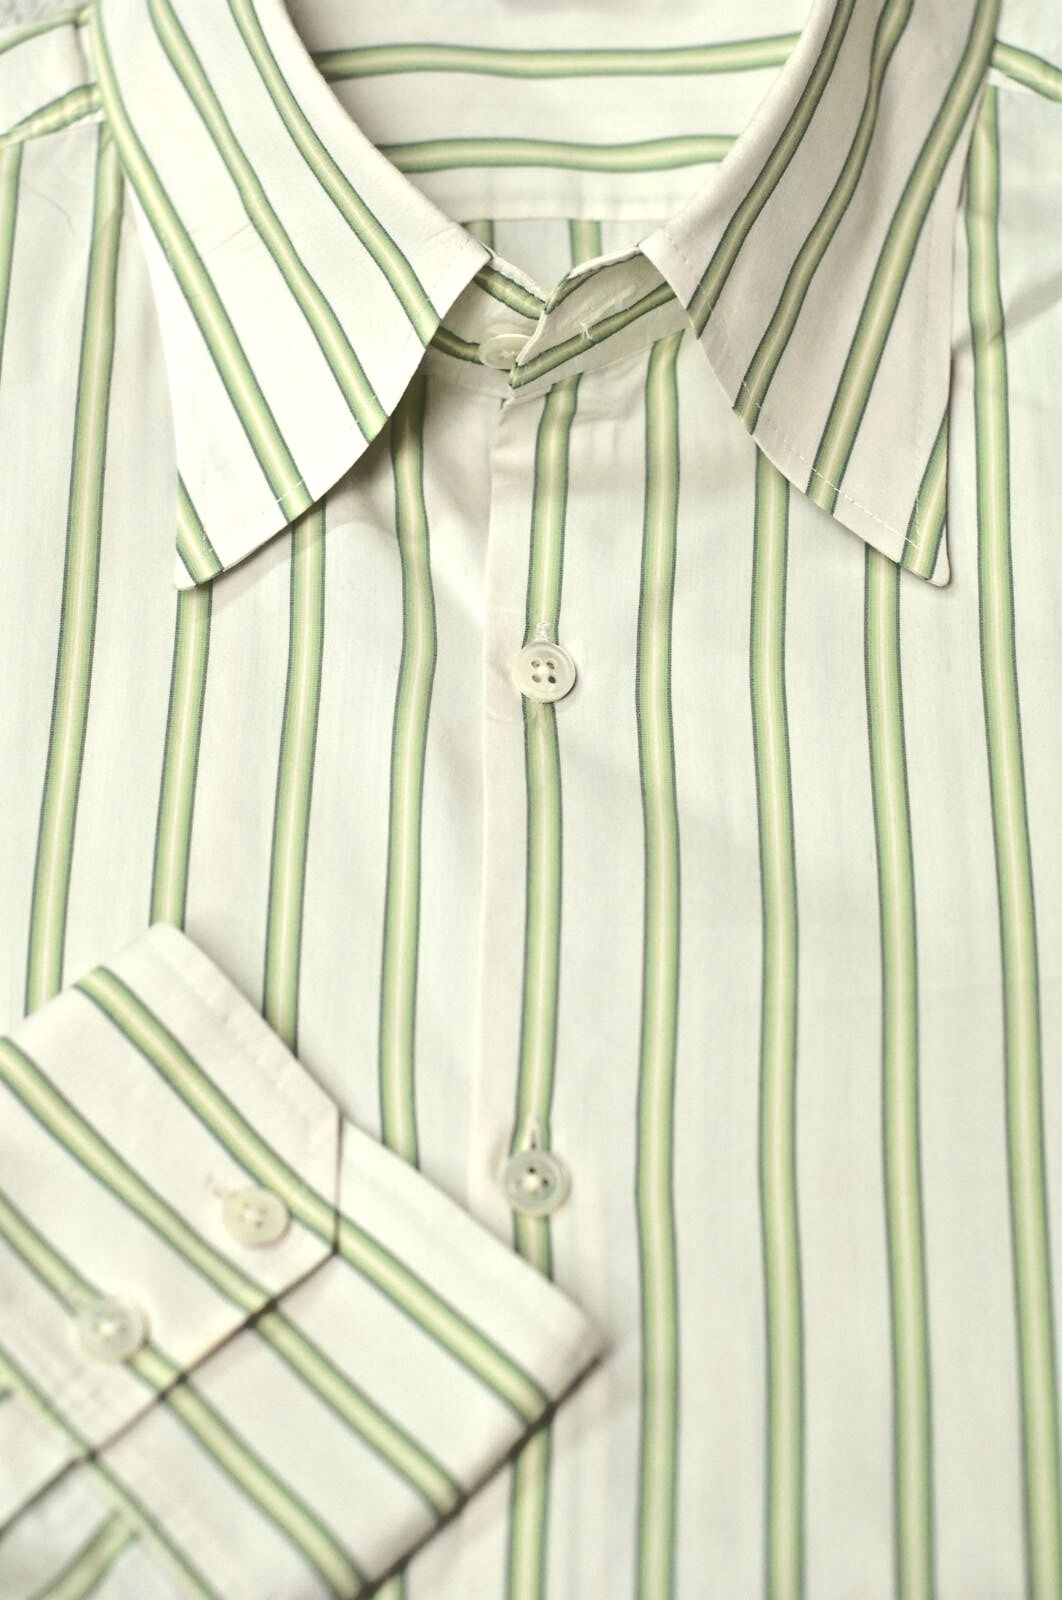 Theory Men's White & Green Stripe Cotton Casual Shirt L Large